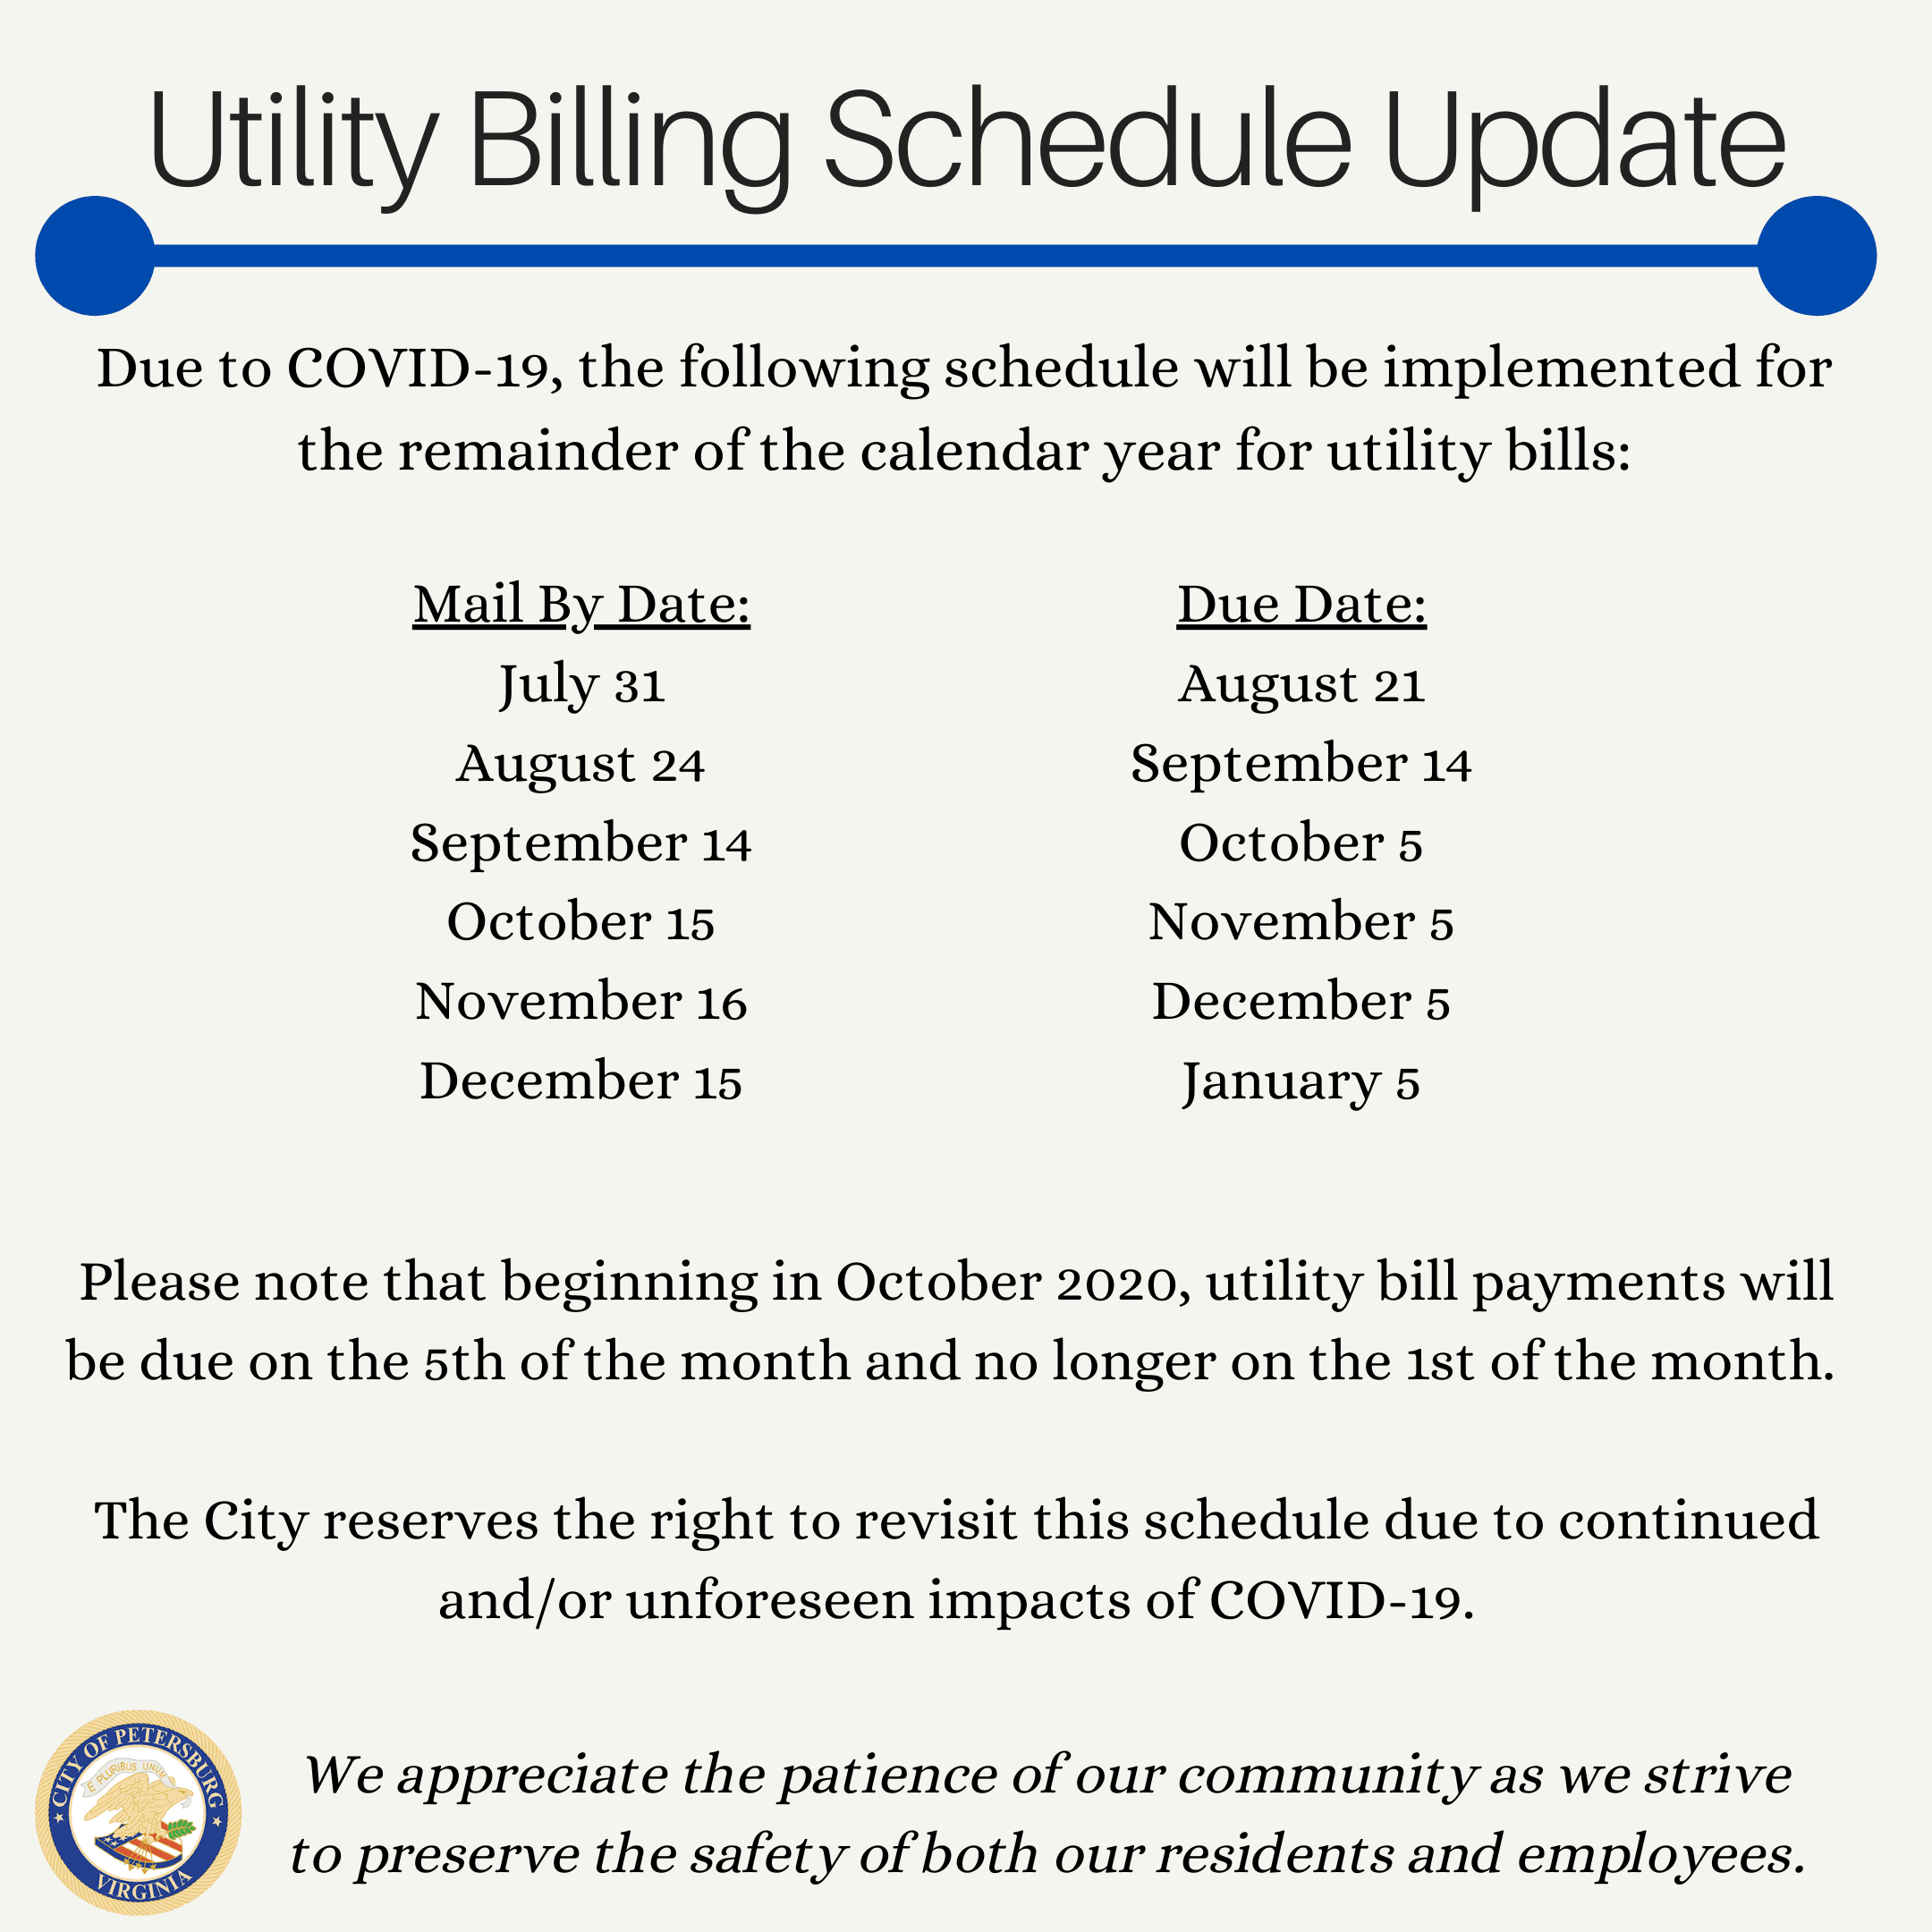 Update on Utility Billing